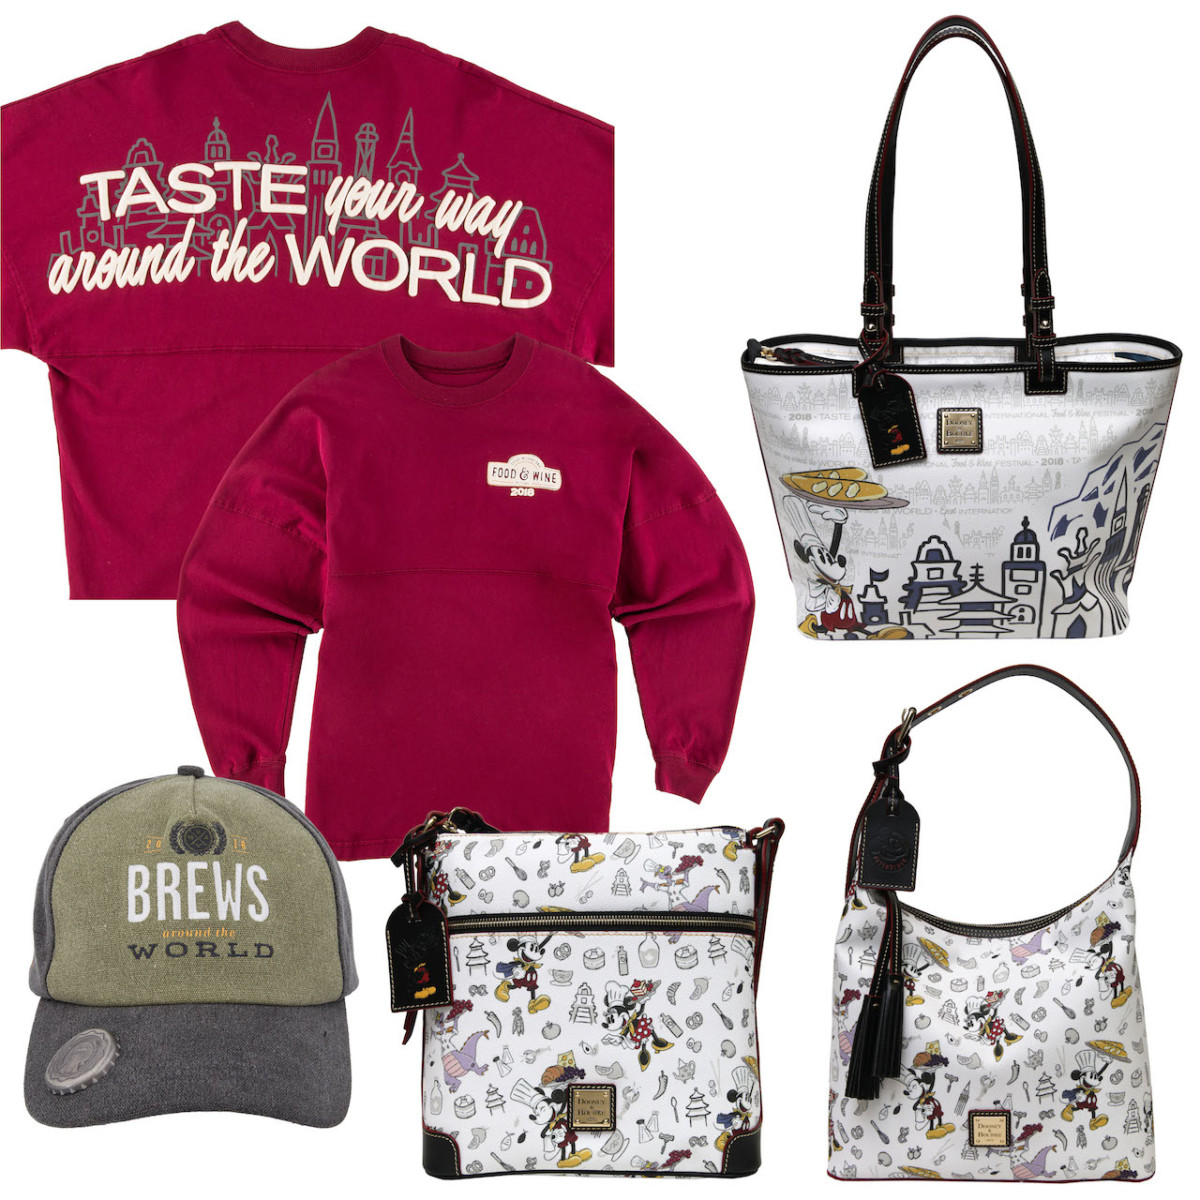 Commemorative Merchandise Mixes Function and Fun for the 2018 Epcot International Food & Wine Festival 5